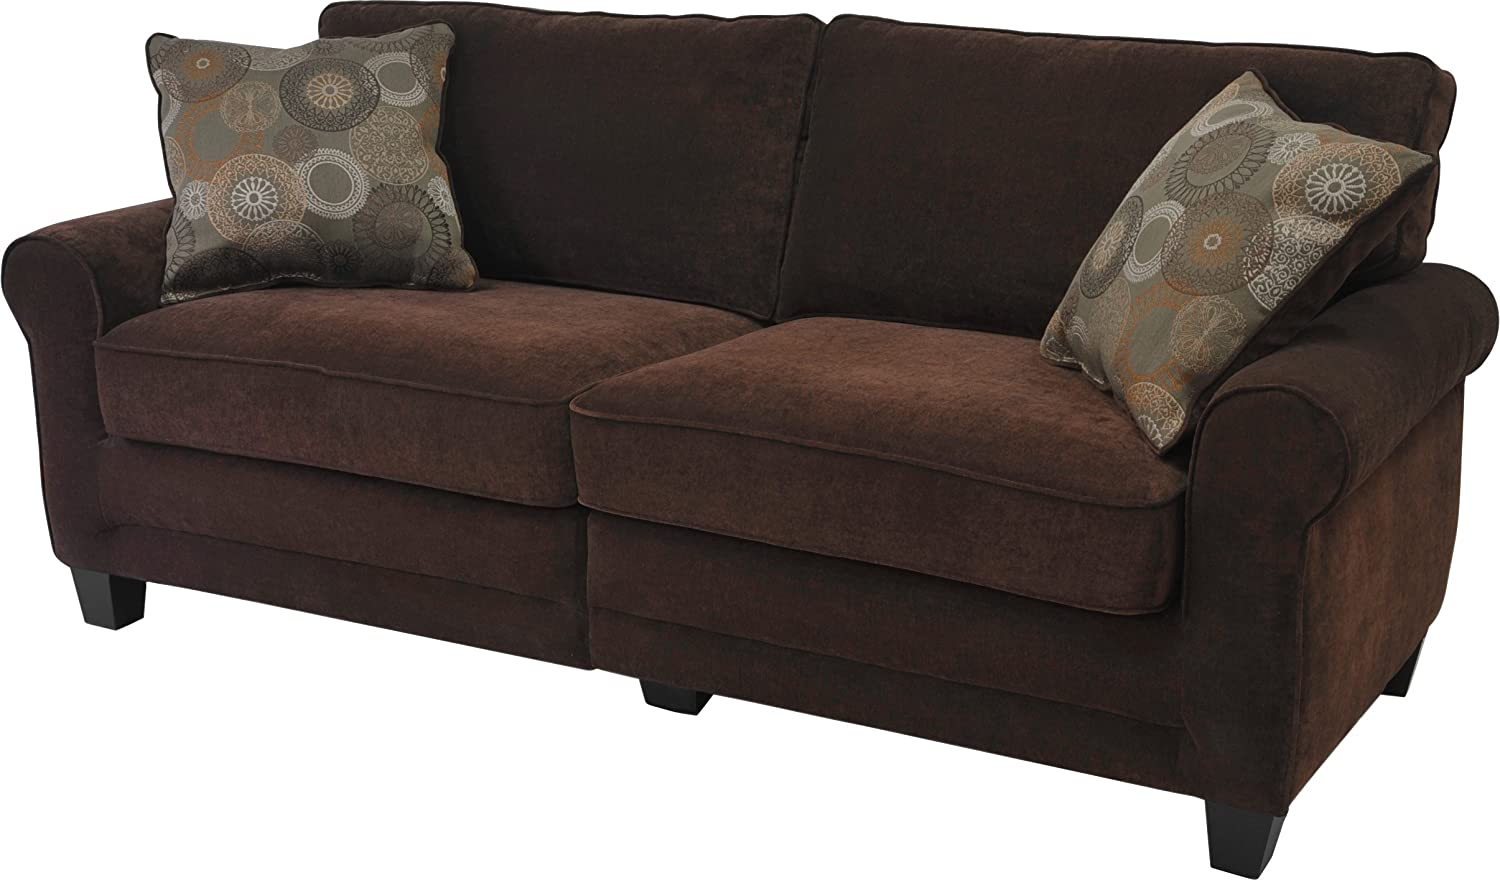 Serta® RTA Copenhagen Collection 78 Sofa in Rye Brown - CR43540PB